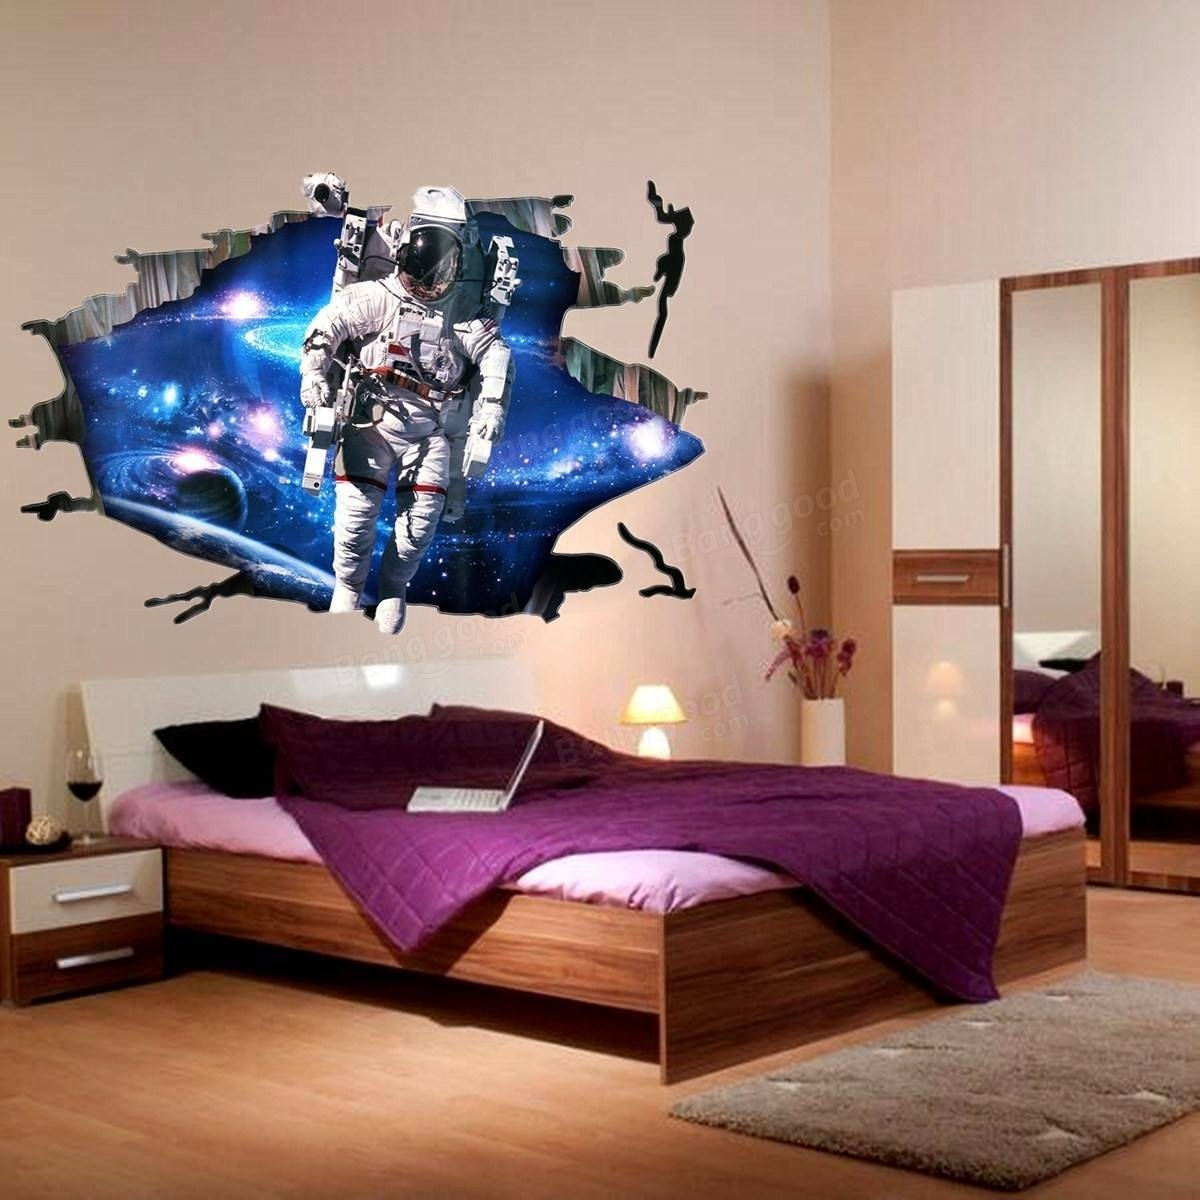 3D Wall Stickers Wallpaper Space Astronauts Decor Kids Room Decal inside Best and Newest Astronaut 3D Wall Art